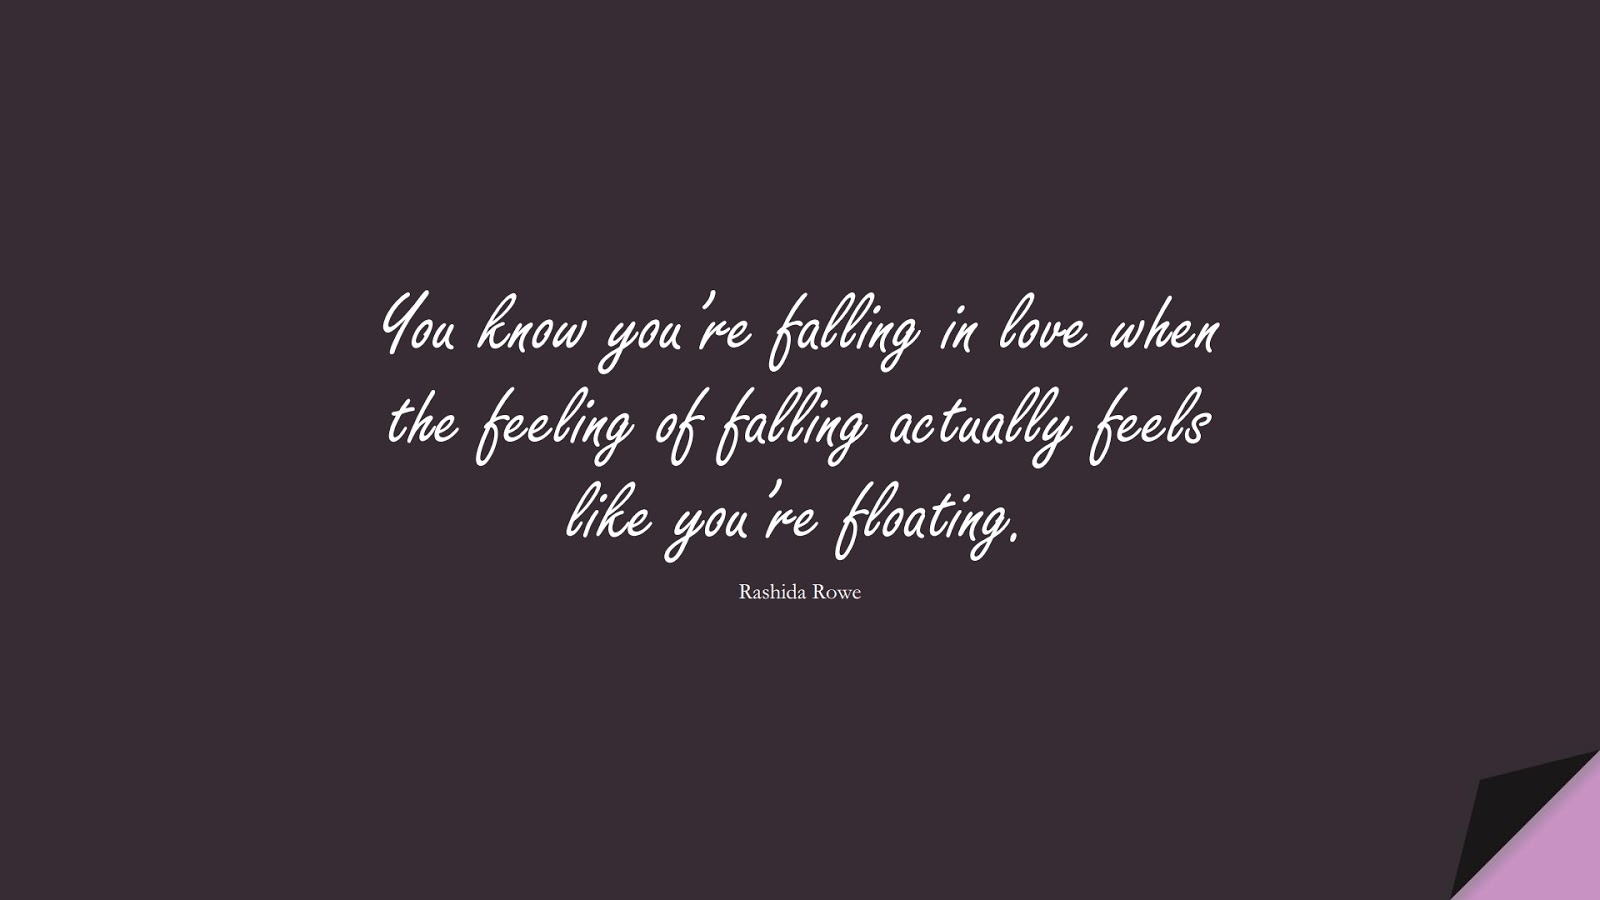 You know you're falling in love when the feeling of falling actually feels like you're floating. (Rashida Rowe);  #LoveQuotes